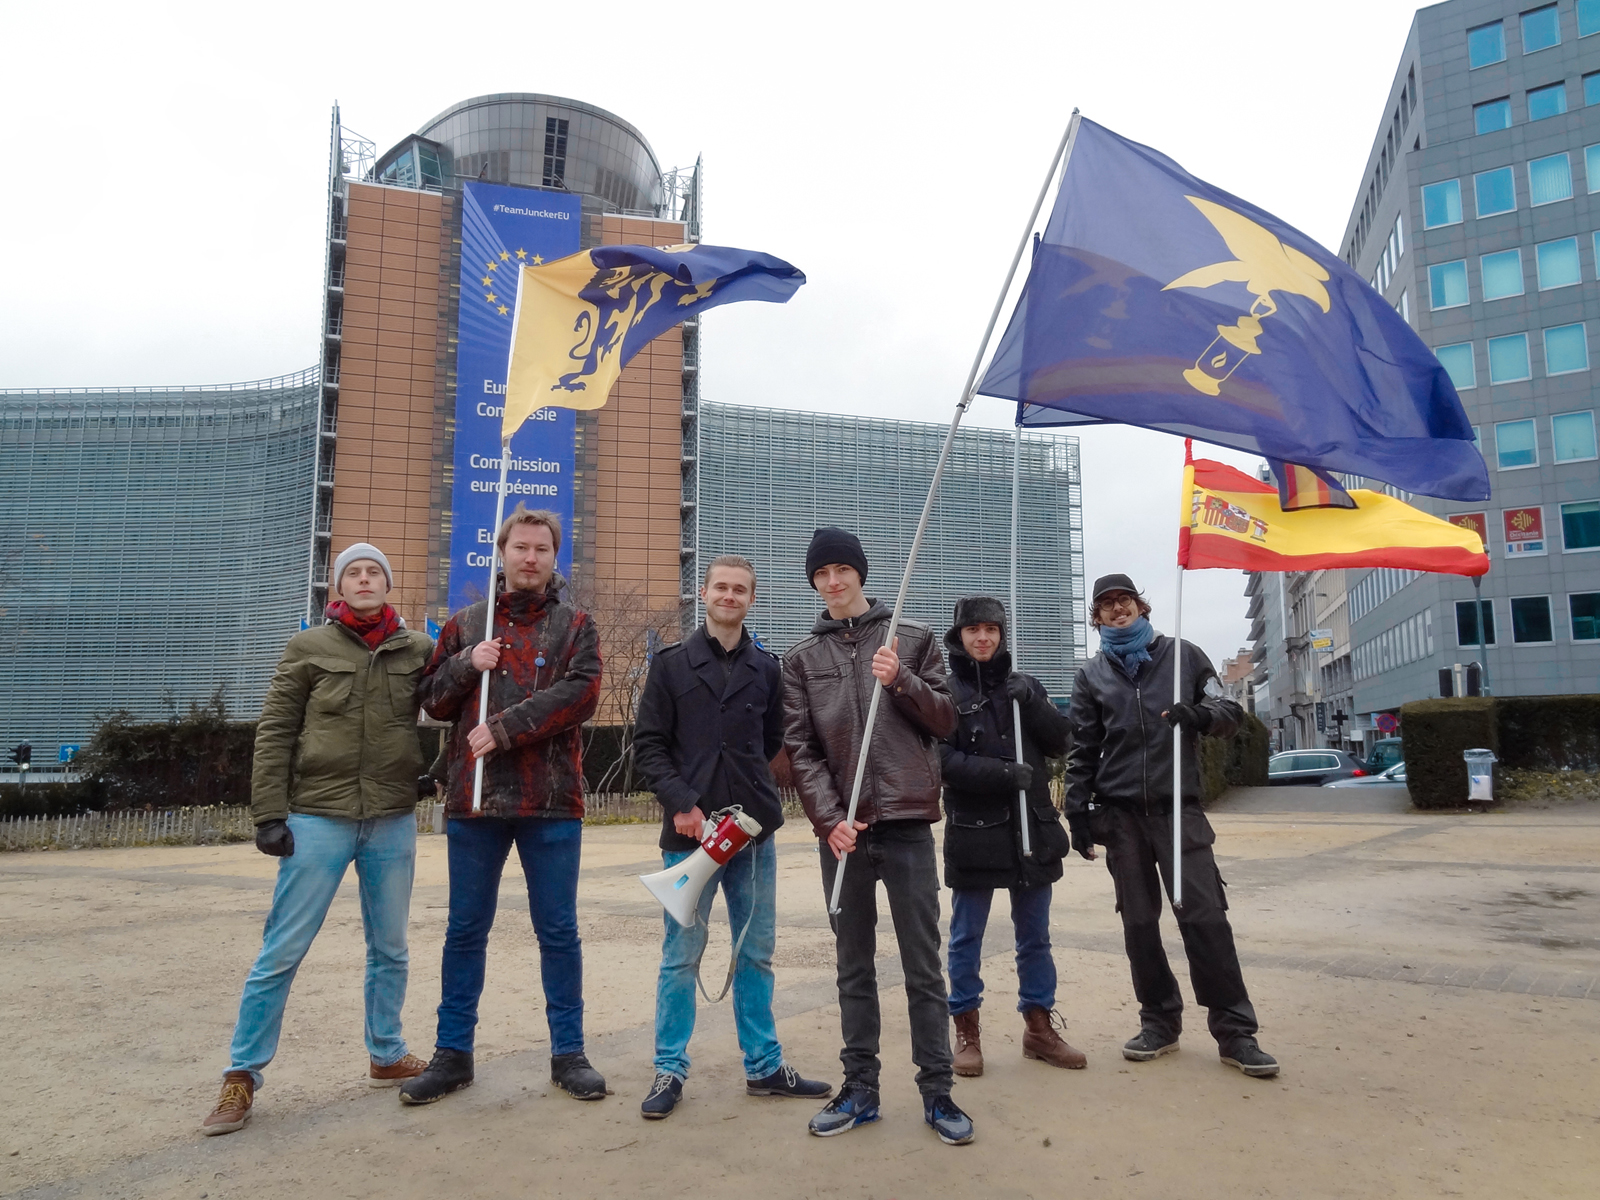 #TakeBackTheNet - 2019-01-26LIA and De Liberalisten organised a protest on the 26th of January against Article 11 and 13 of the Directive on Copyright in the Digital Single Market.